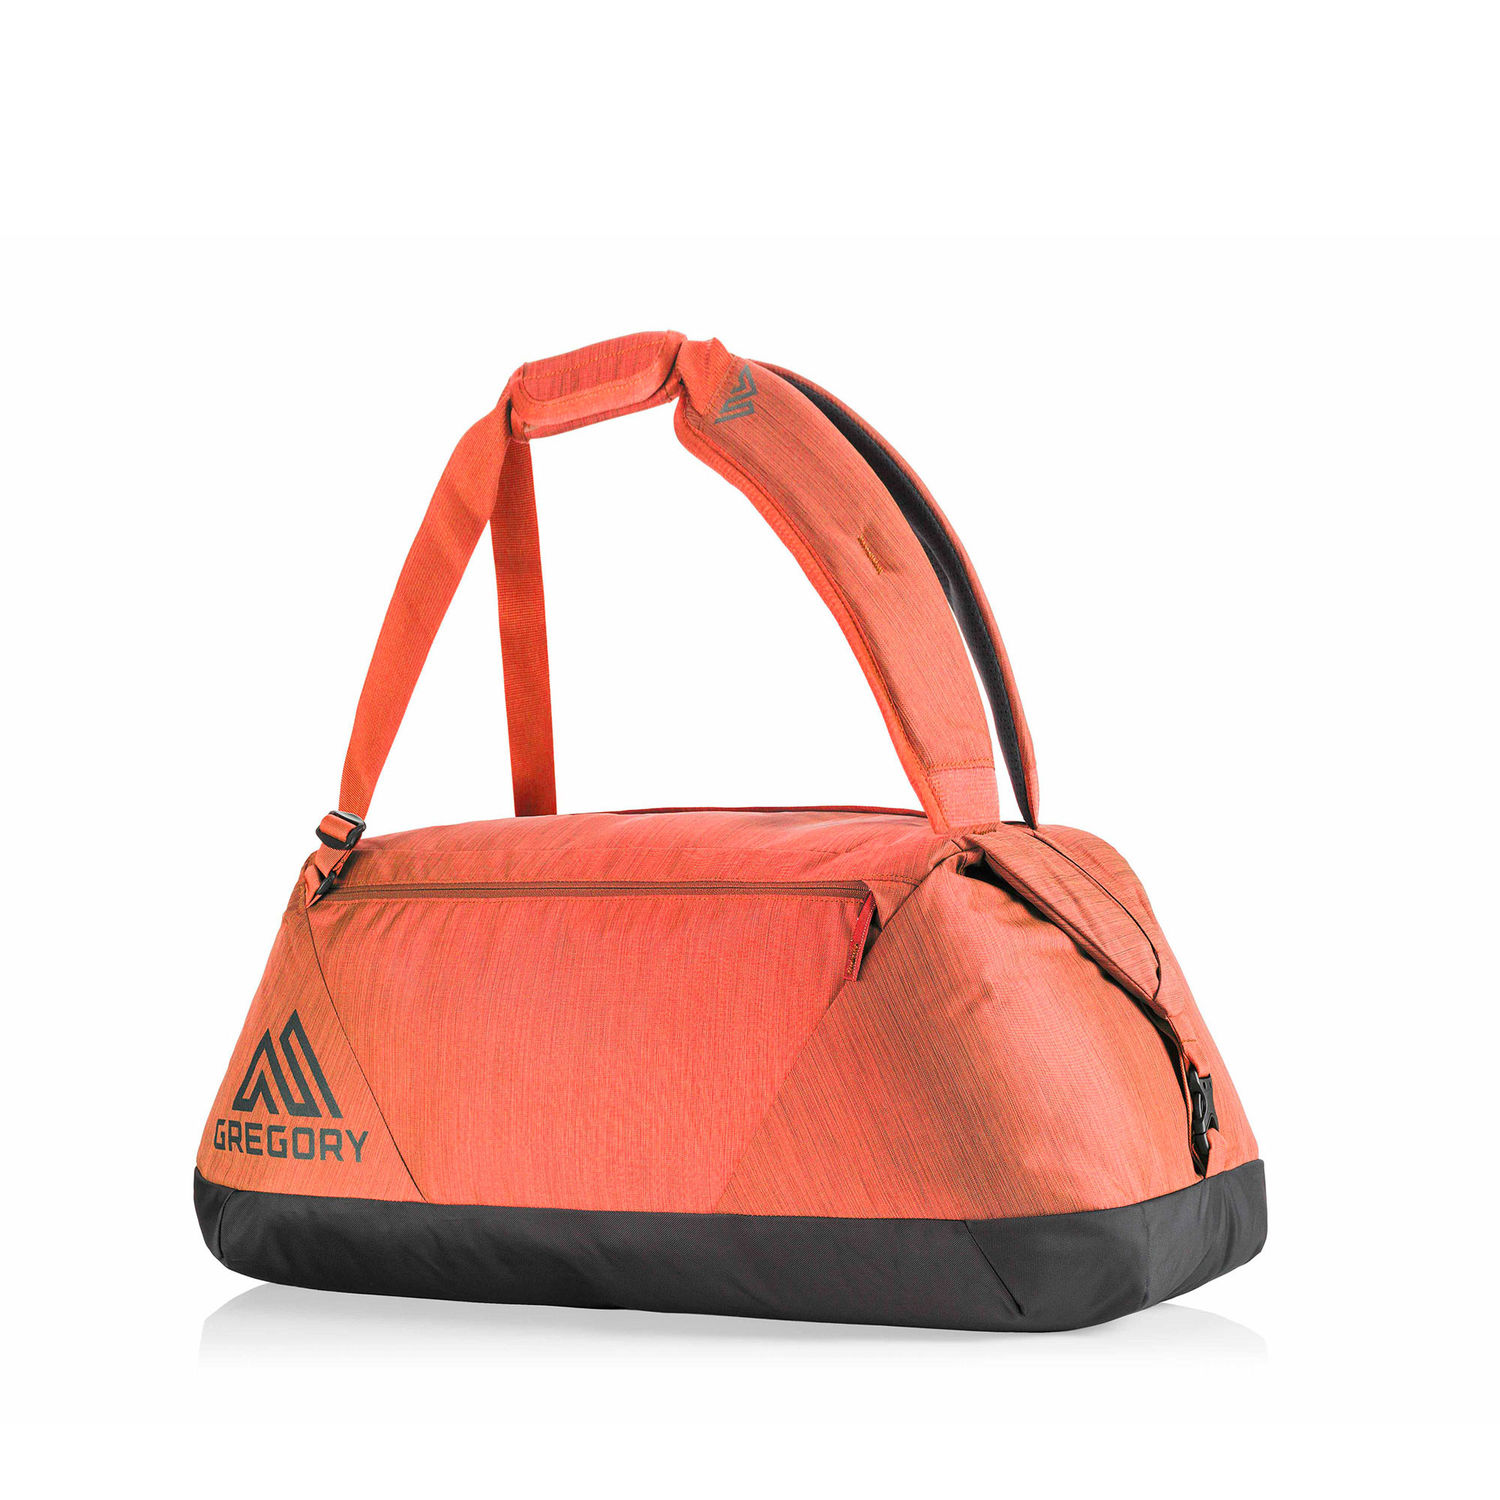 GREGORY Stash Duffle 65 L - Autumn Rust